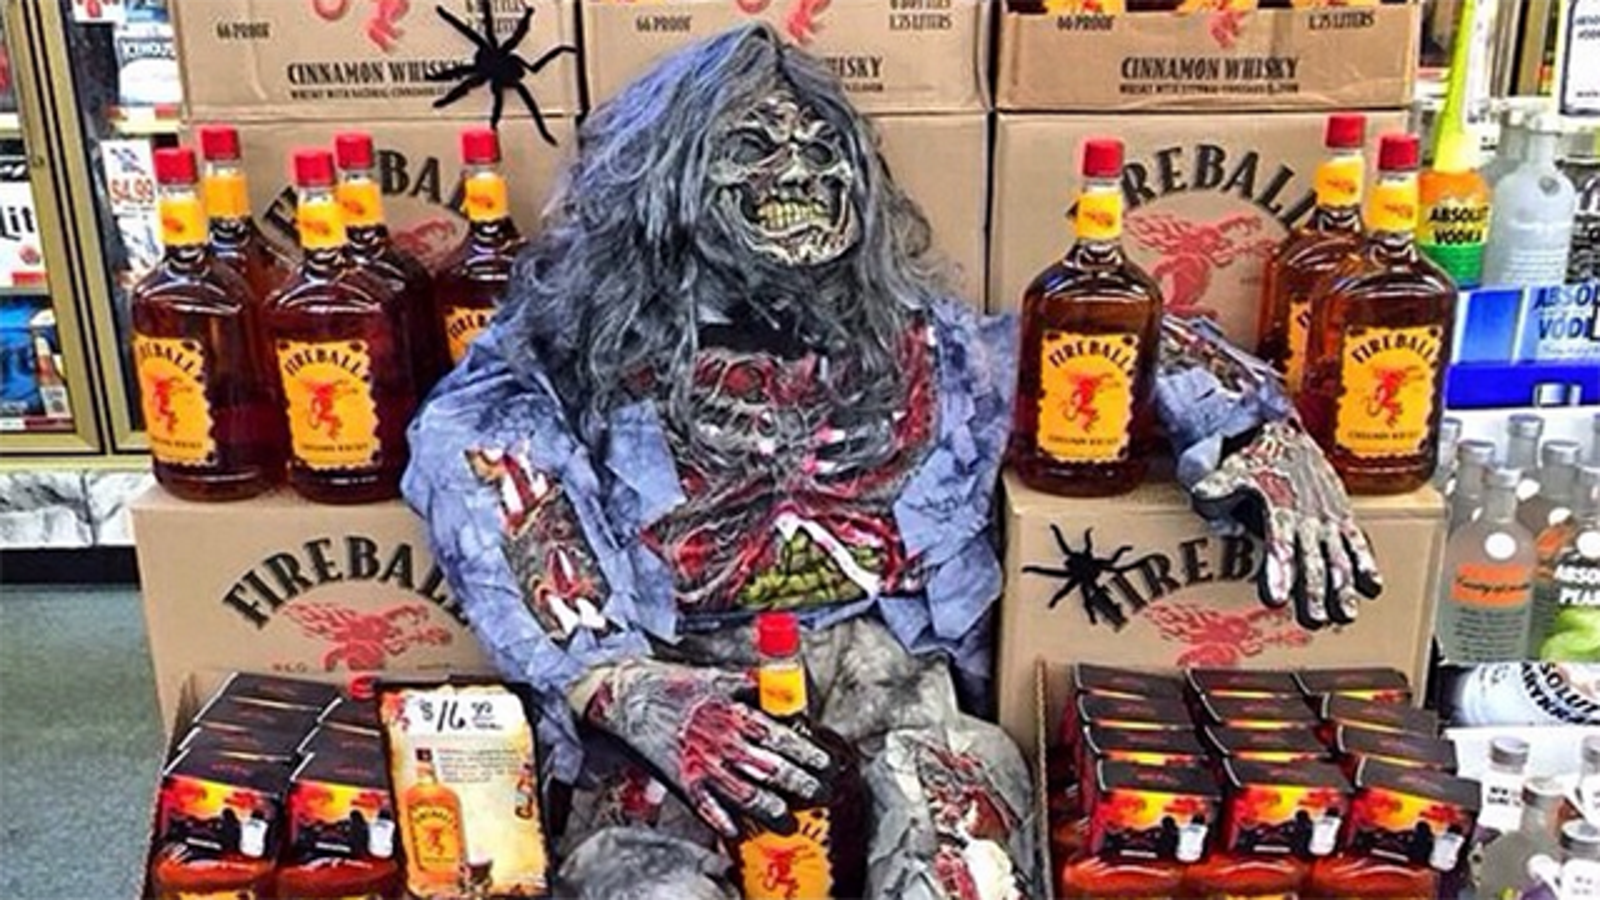 Fireball Whisky contains an antifreeze ingredient